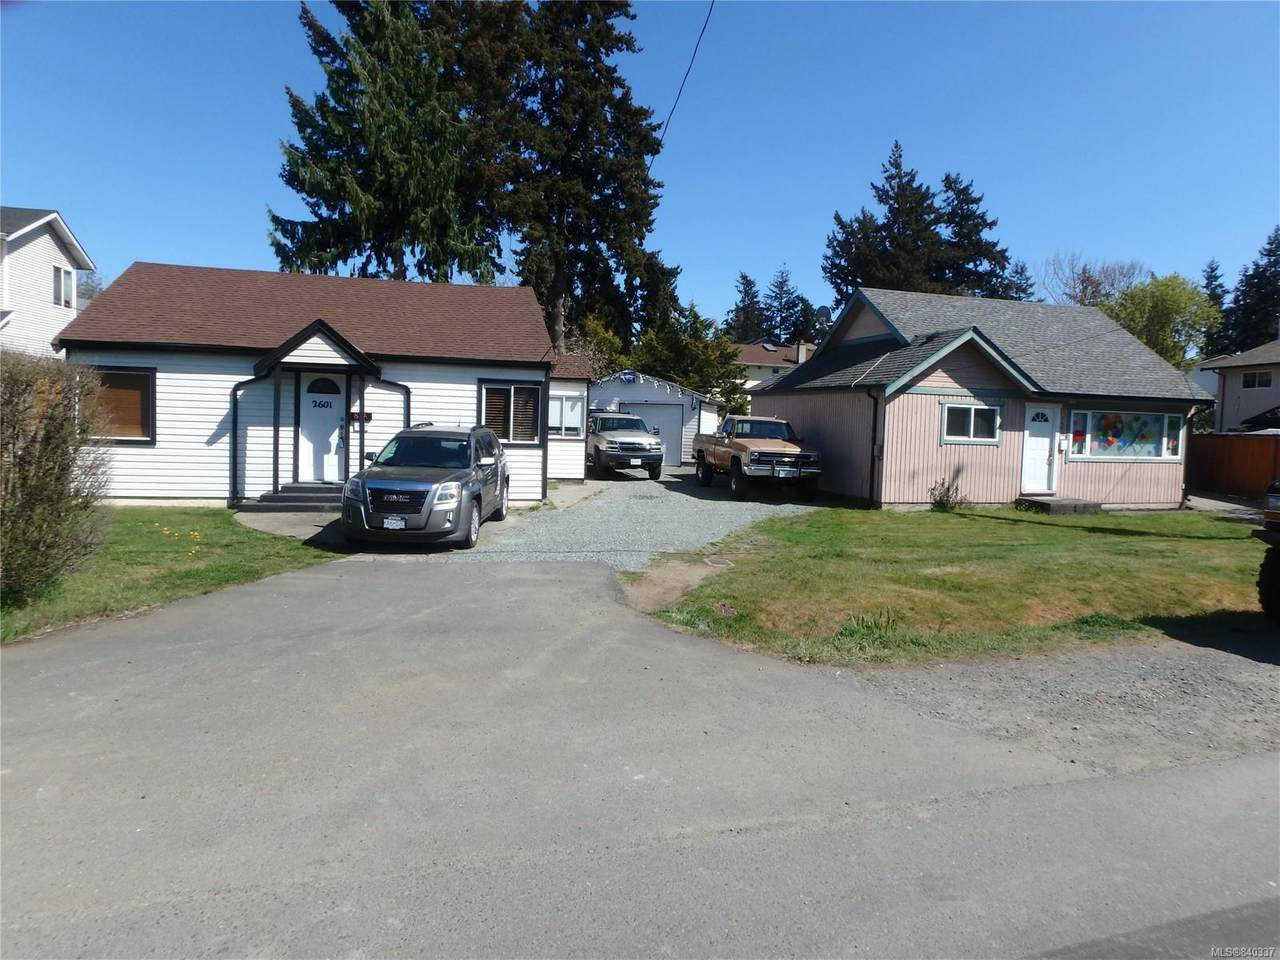 2605 Millstream Rd - Photo 1